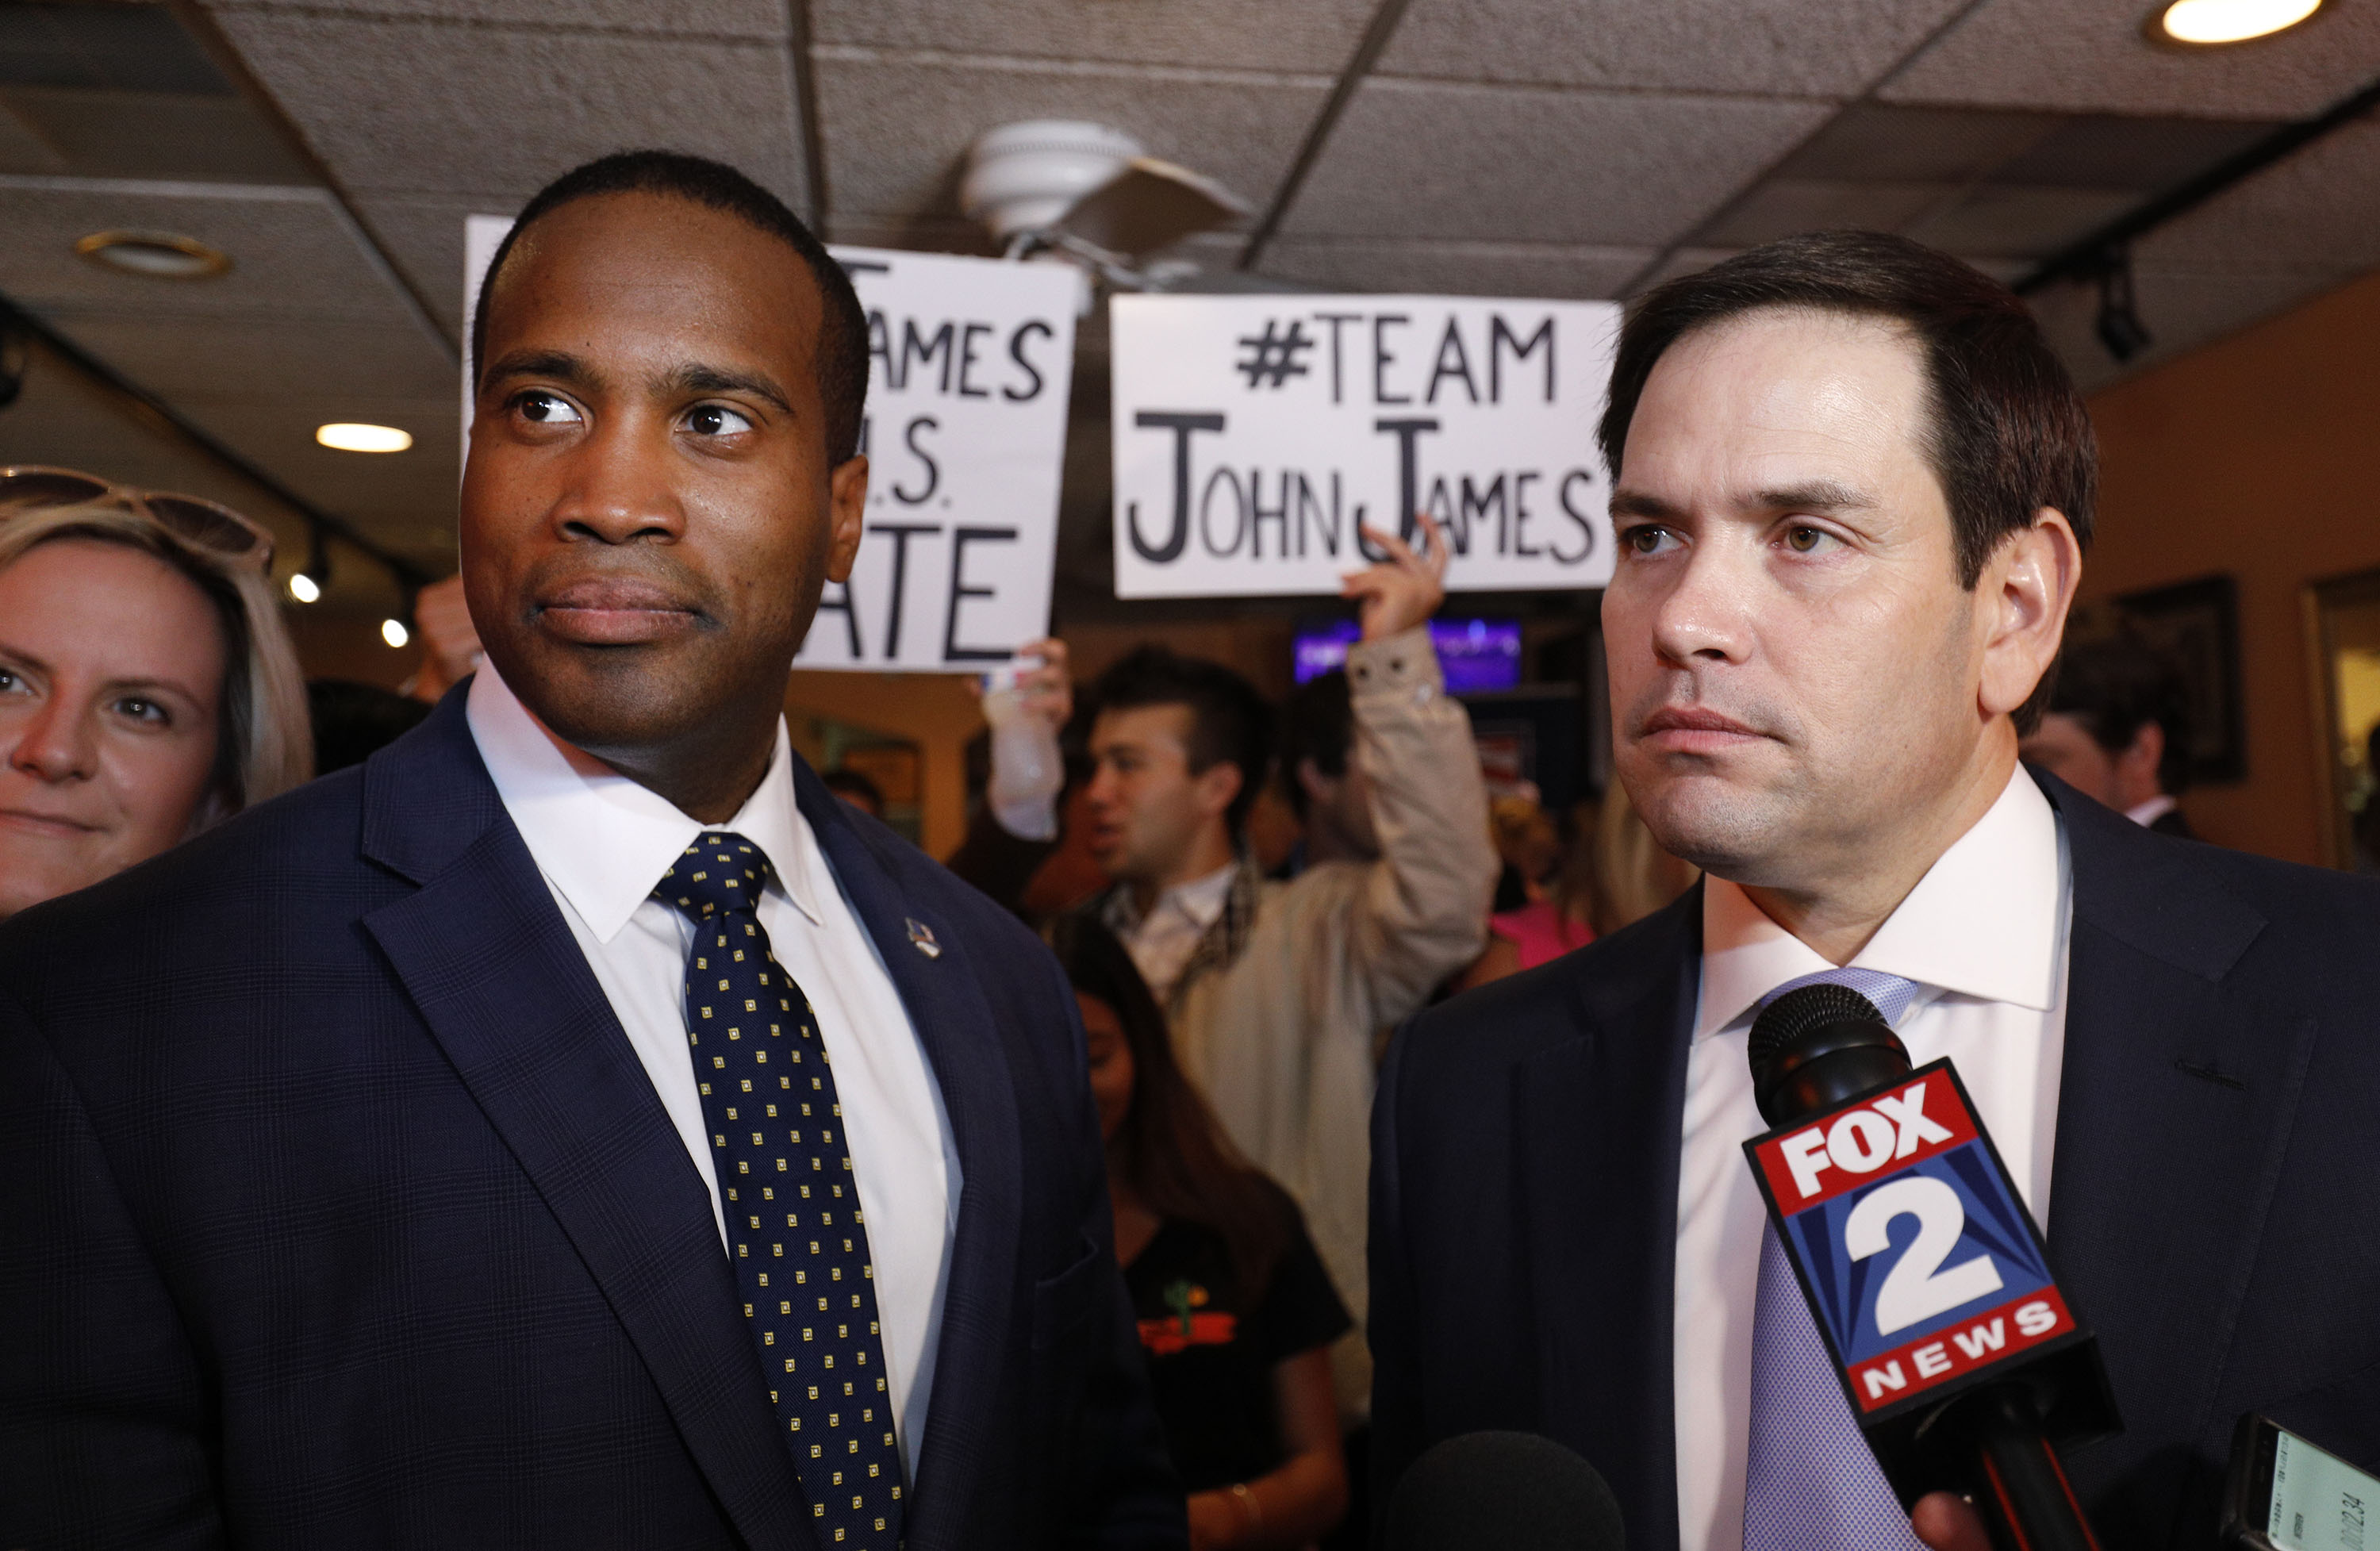 DETROIT, MI - AUGUST 13: Michigan GOP U.S. Senate candidate John James (left) campaigns with the help of Sen. Marco Rubio (R-FL)(right) at Senor Lopez Restaurant August 13th, 2018 in Detroit, Michigan. James, an Iraq war veteran and businessman who has President Donald Trump's endorsement, will be running against Democrat incumbent U.S. Sen. Debbie Stabenow (D-MI) this November. (Photo by Bill Pugliano/Getty Images)